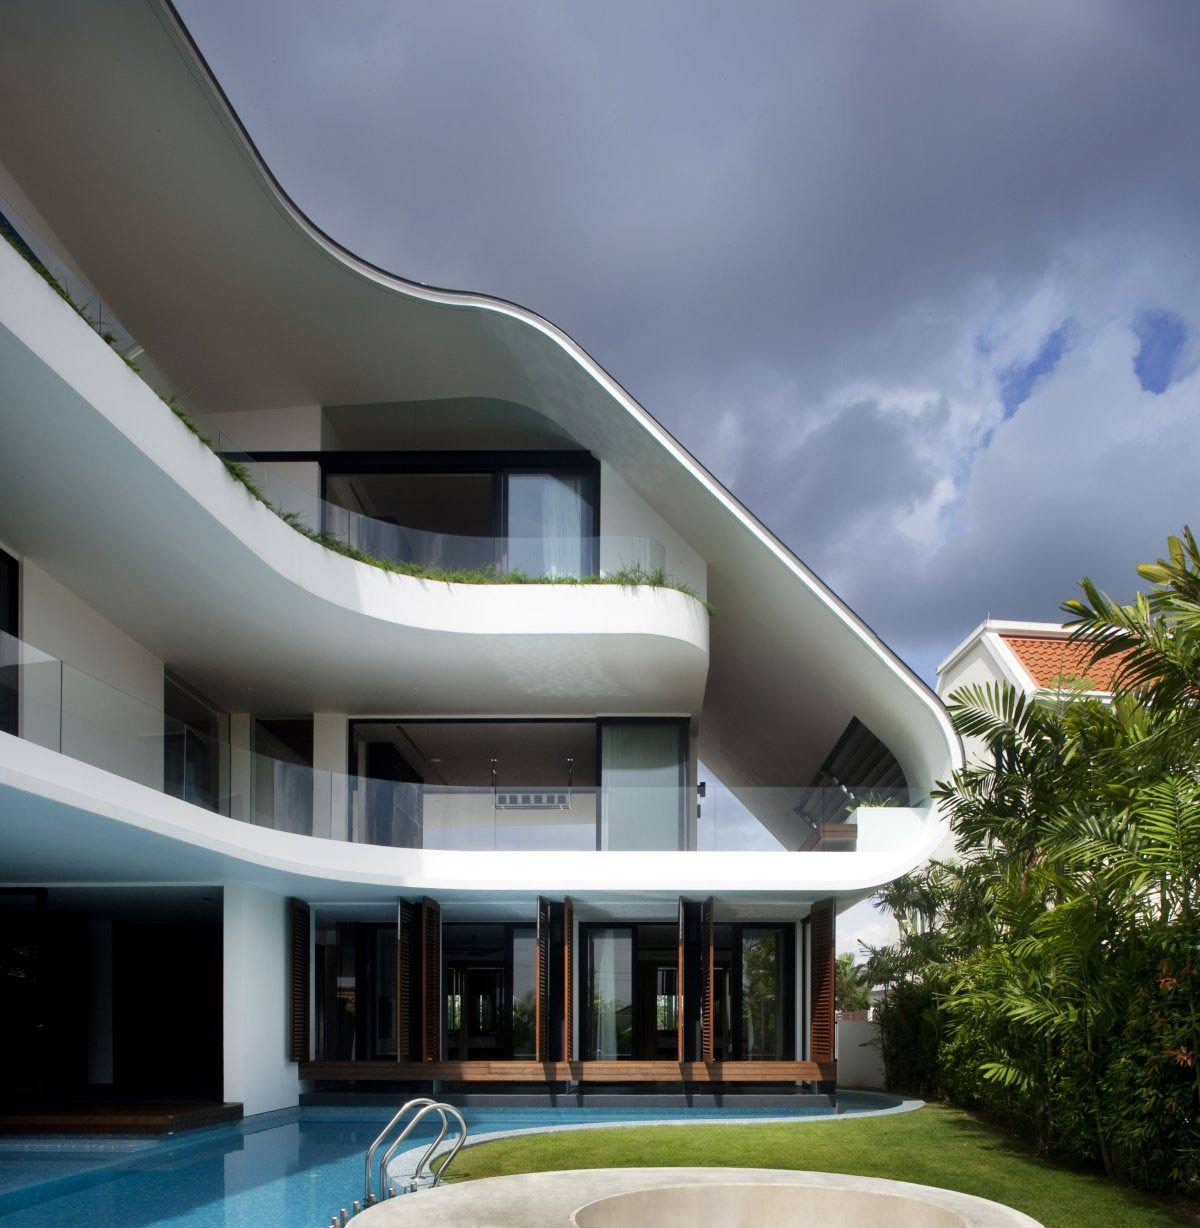 Pool, Garden, Ninety7 @ Siglap Road House by Aamer Architects